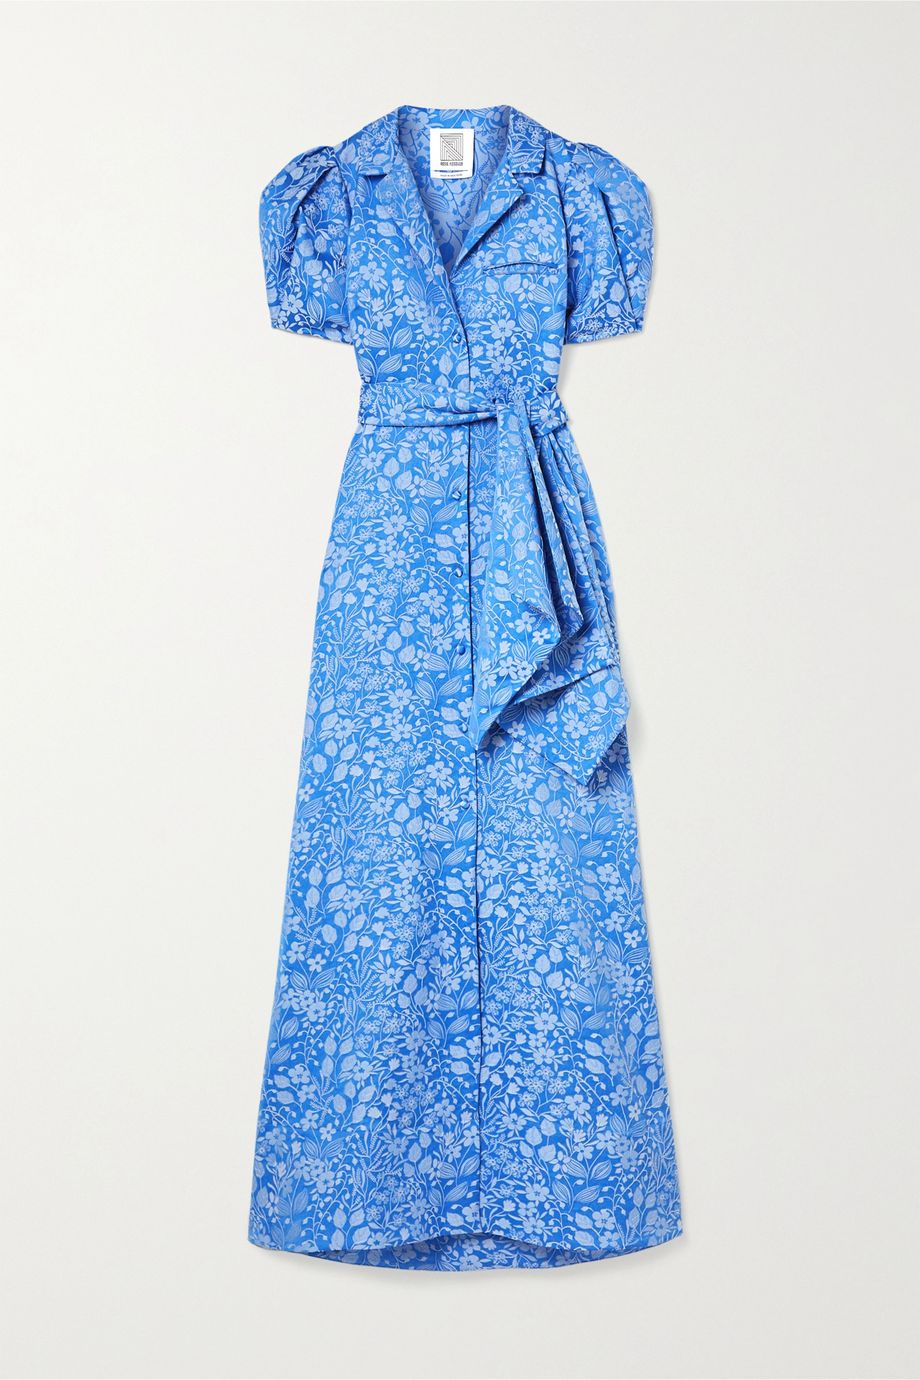 Rosie Assoulin Belted floral-jacquard maxi dress